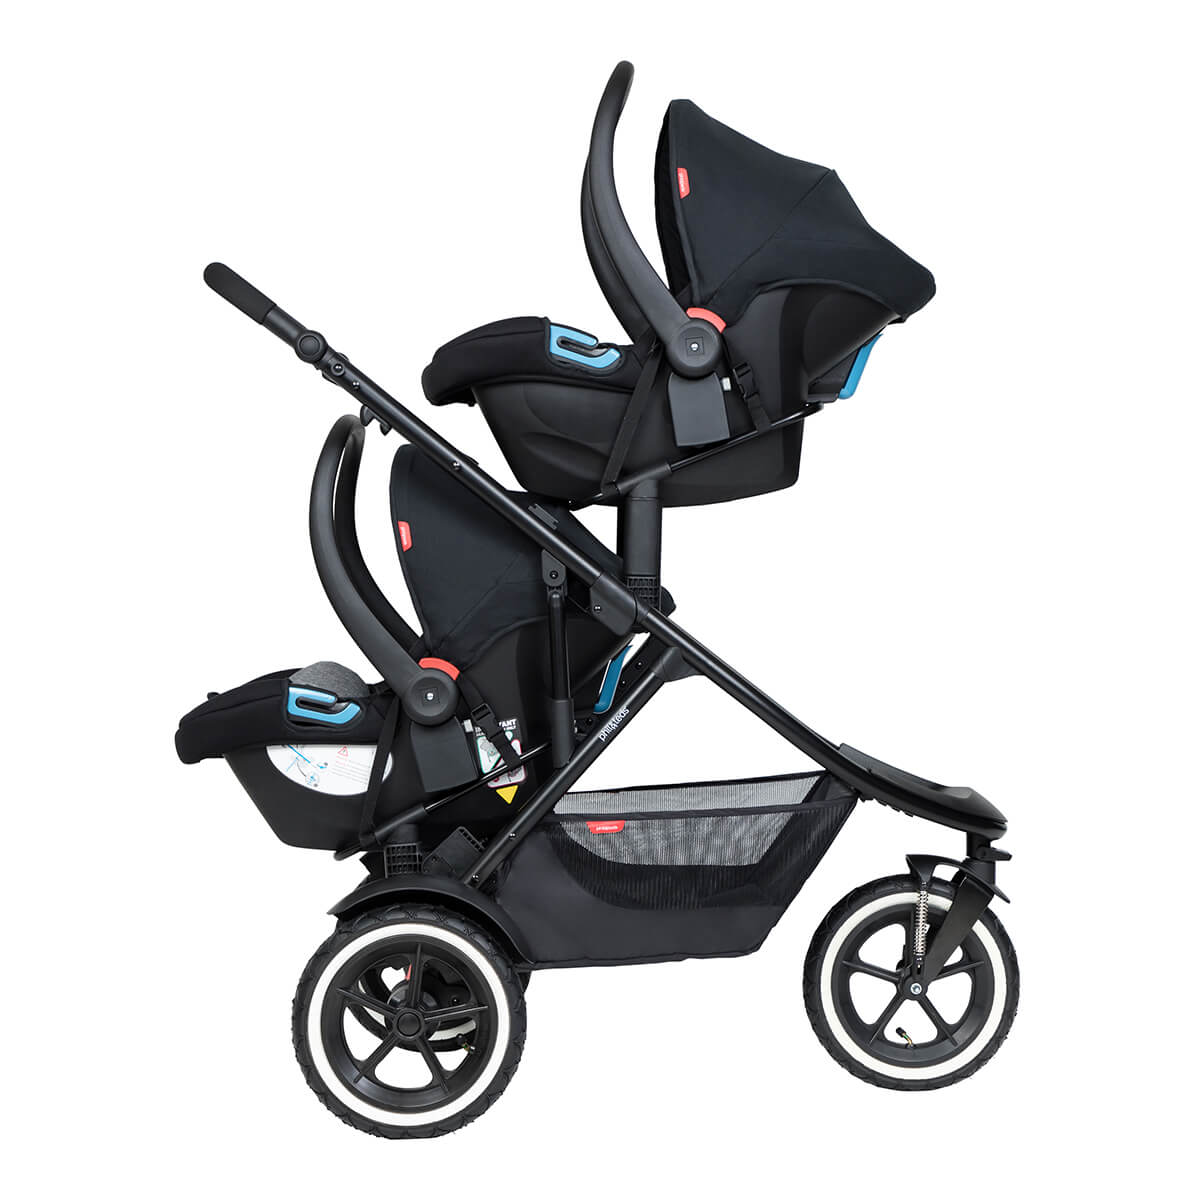 https://cdn.accentuate.io/4363395924021/19118870822965/philteds-sport-buggy-with-double-alpha-travel-system-v1626403802156.jpg?1200x1200